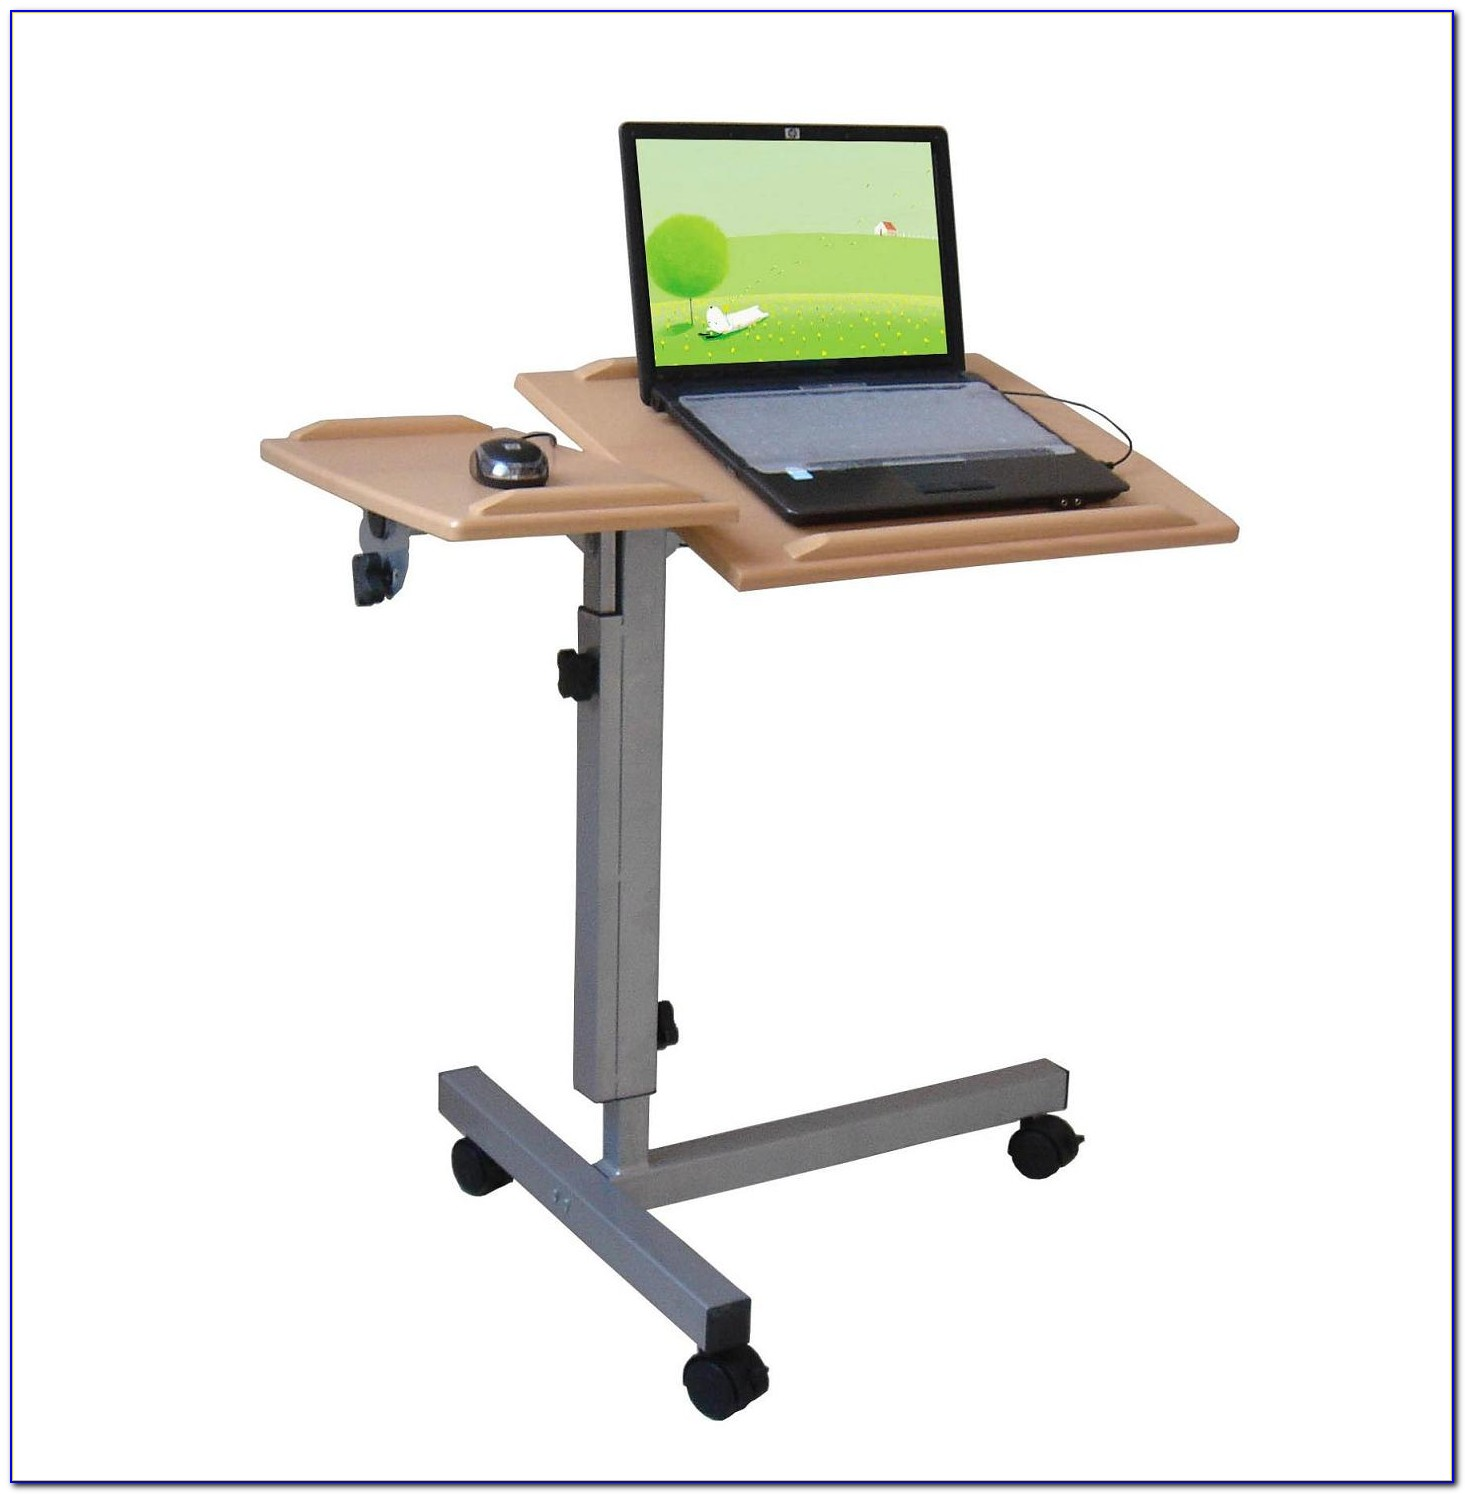 Tabletop Laptop Stand